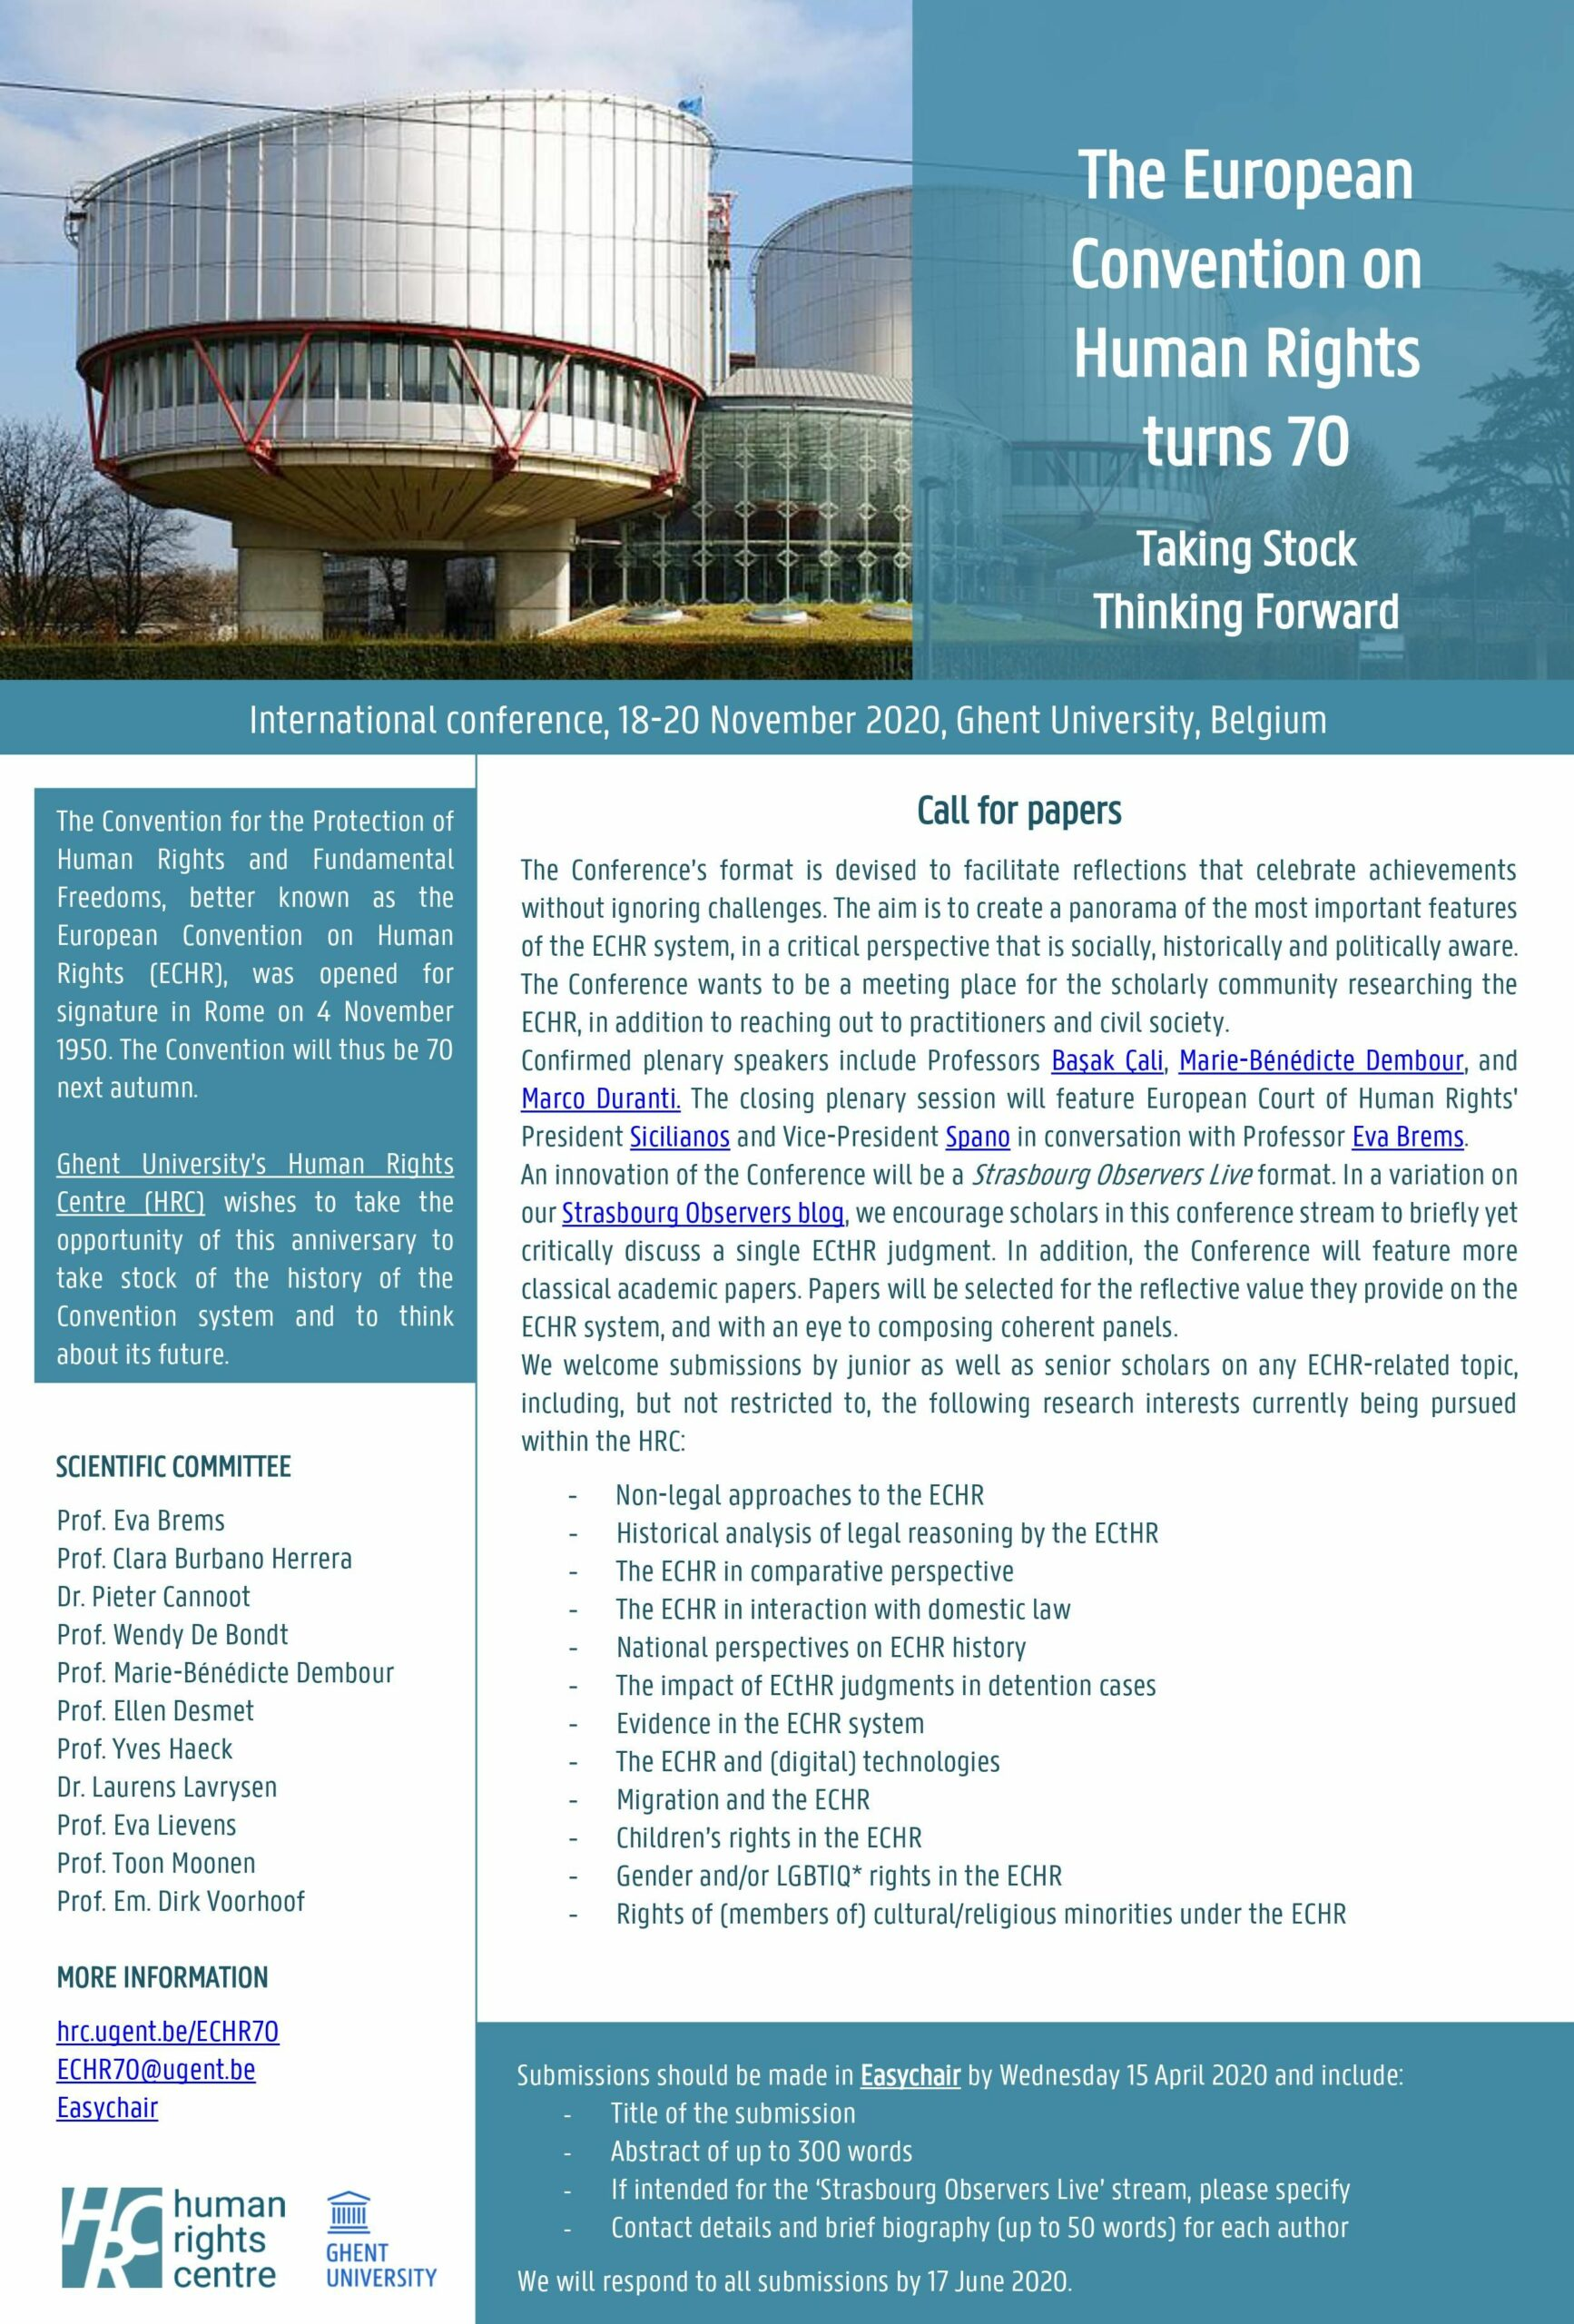 ECHR70 - Call for papers (002)